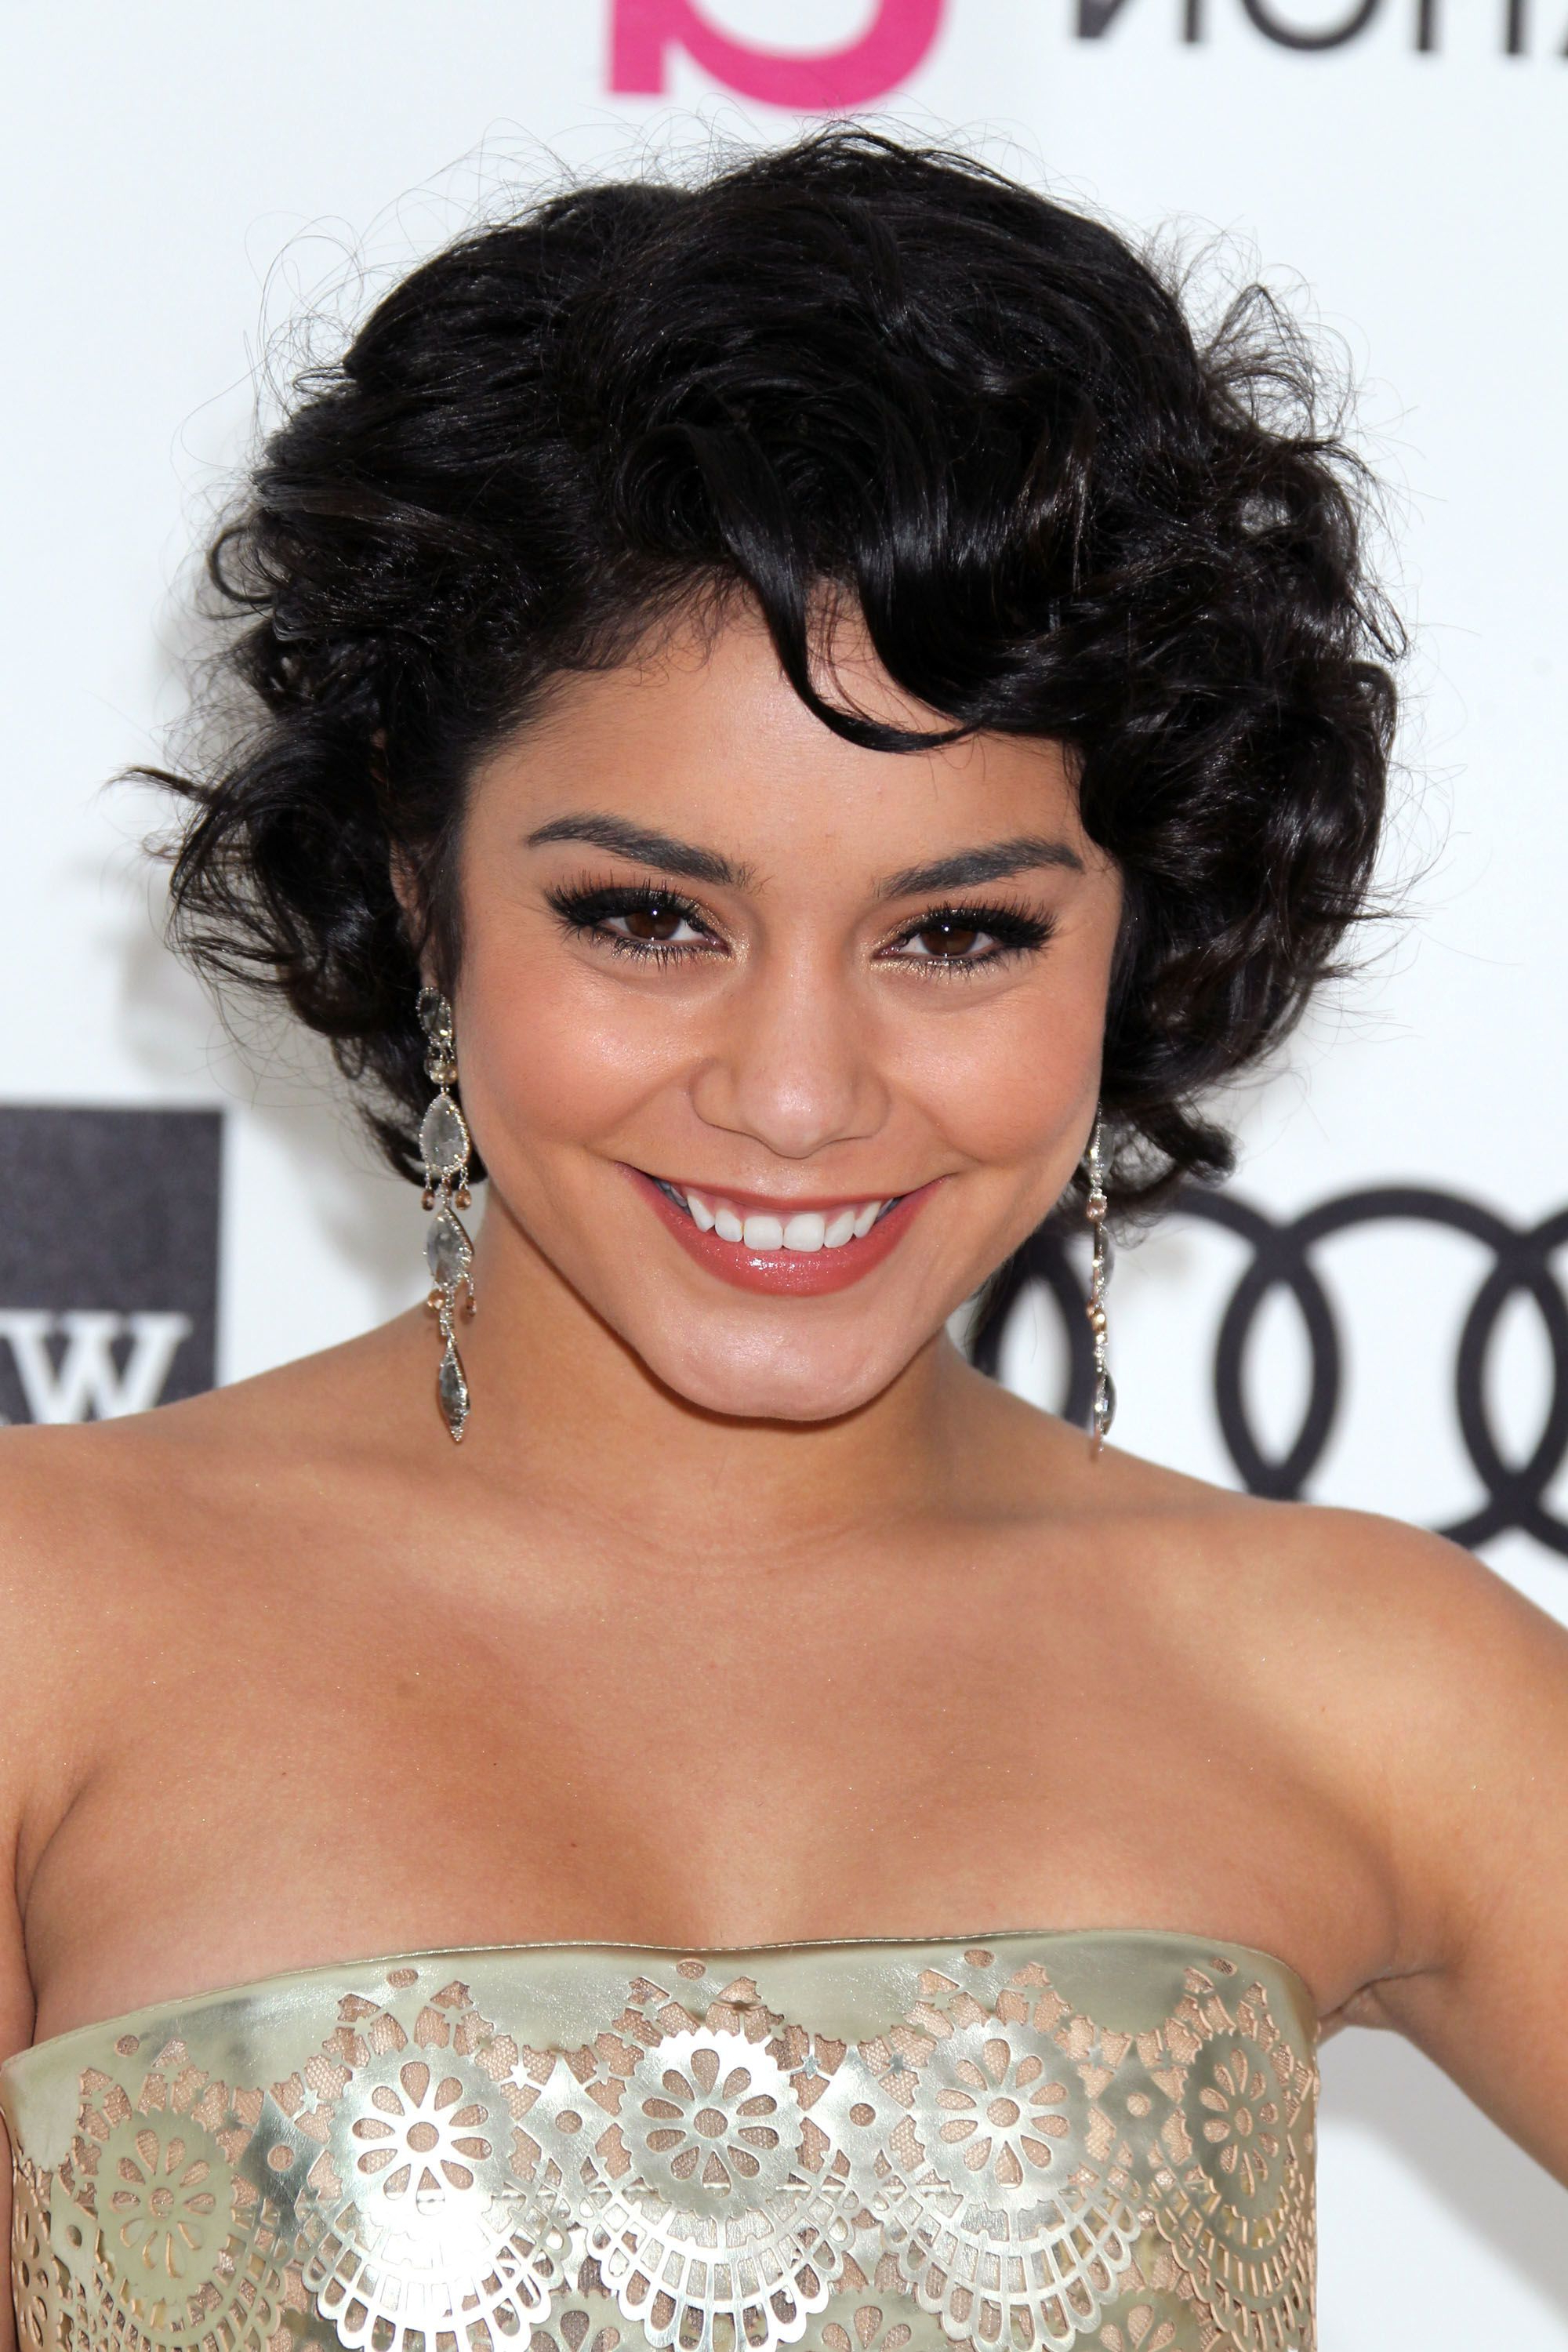 The Best Short Cuts For Thin, Curly Hair | Thin Curly Hair, Long With Regard To Short Haircuts For Thin Curly Hair (View 23 of 25)